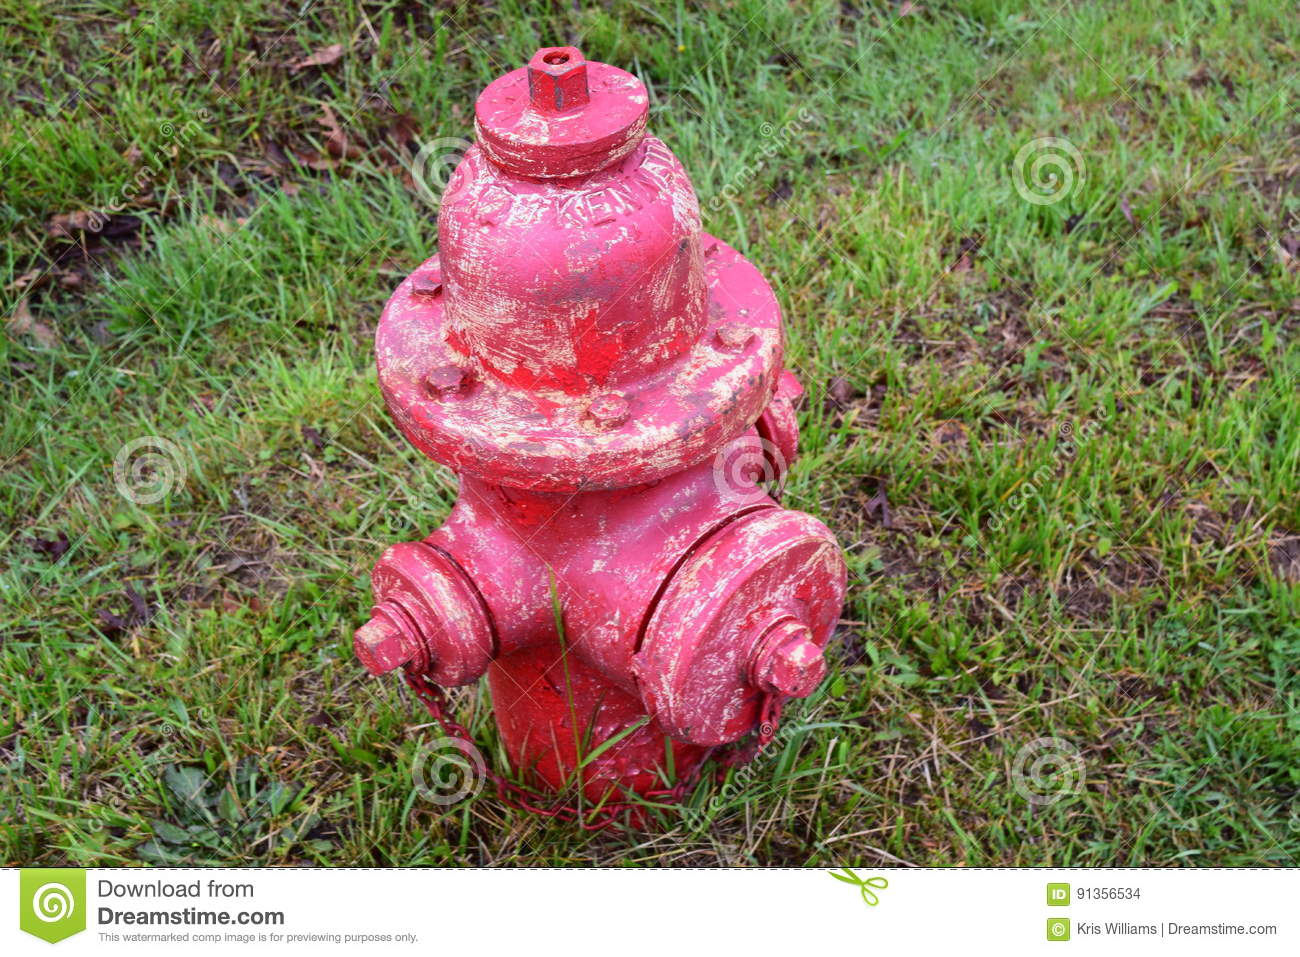 Fire hydrant needing a paint job